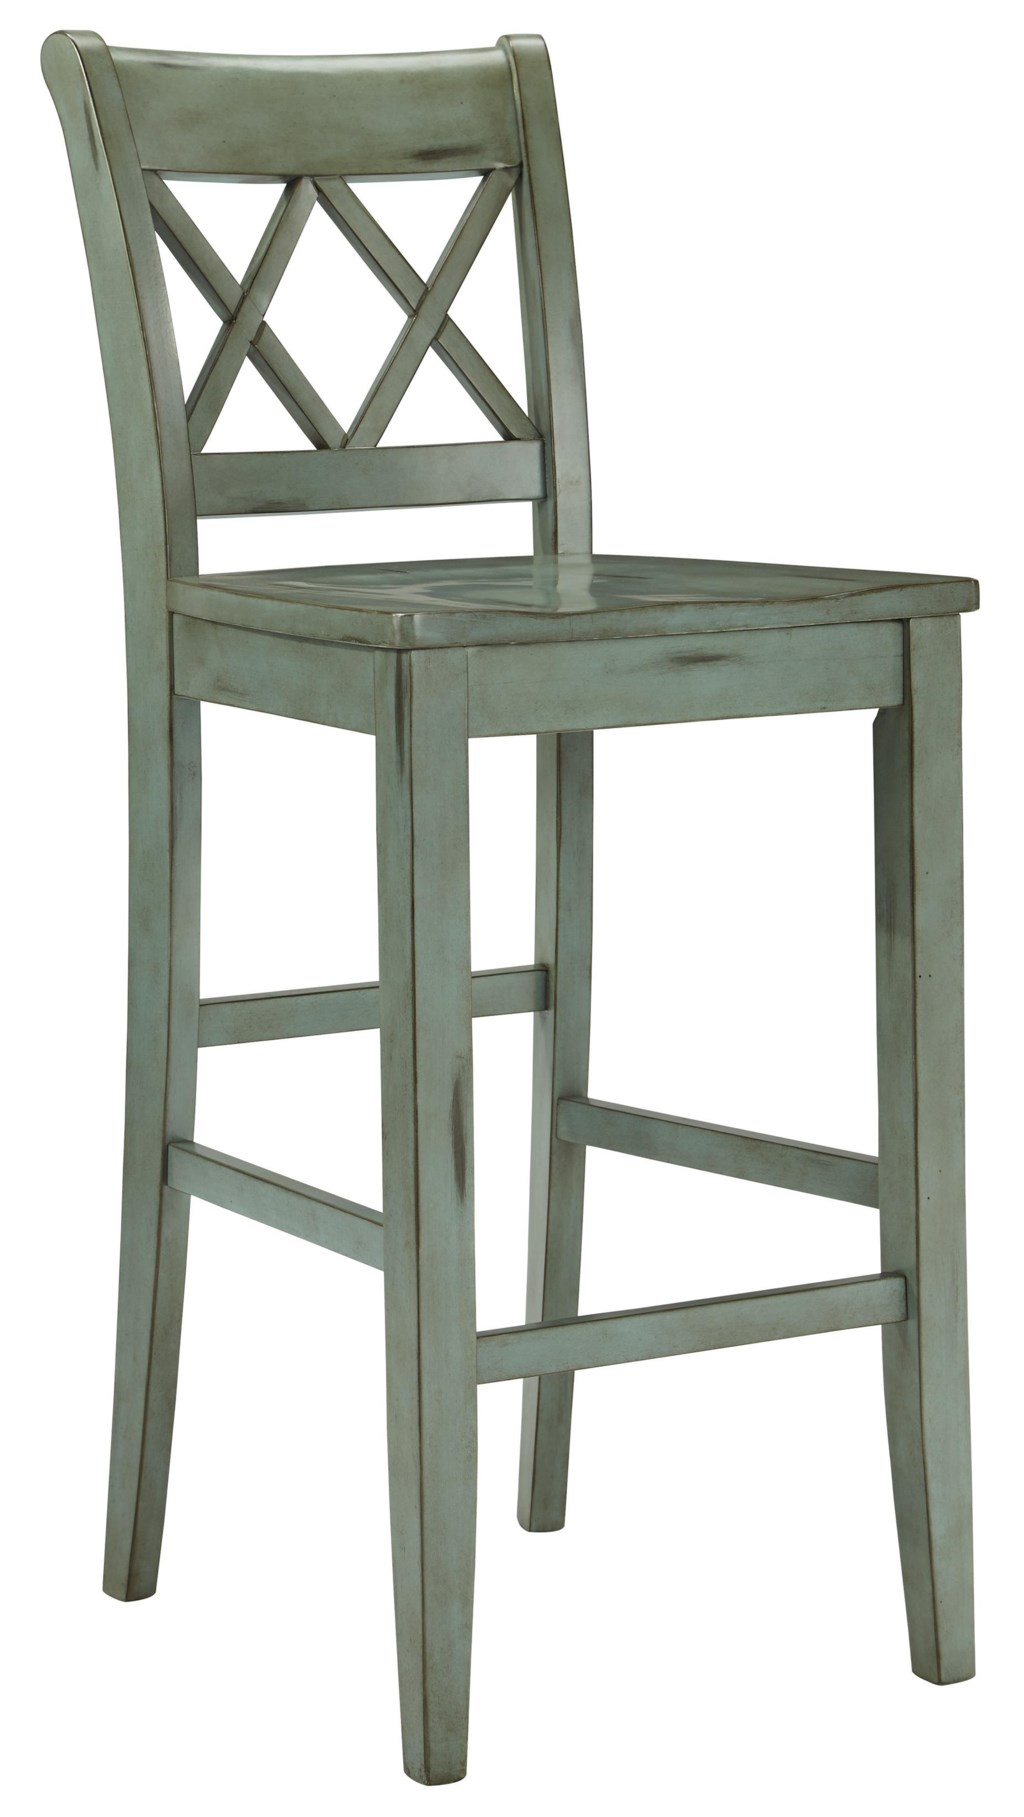 Mestler antique blue green tall barstool by signature design by ashley